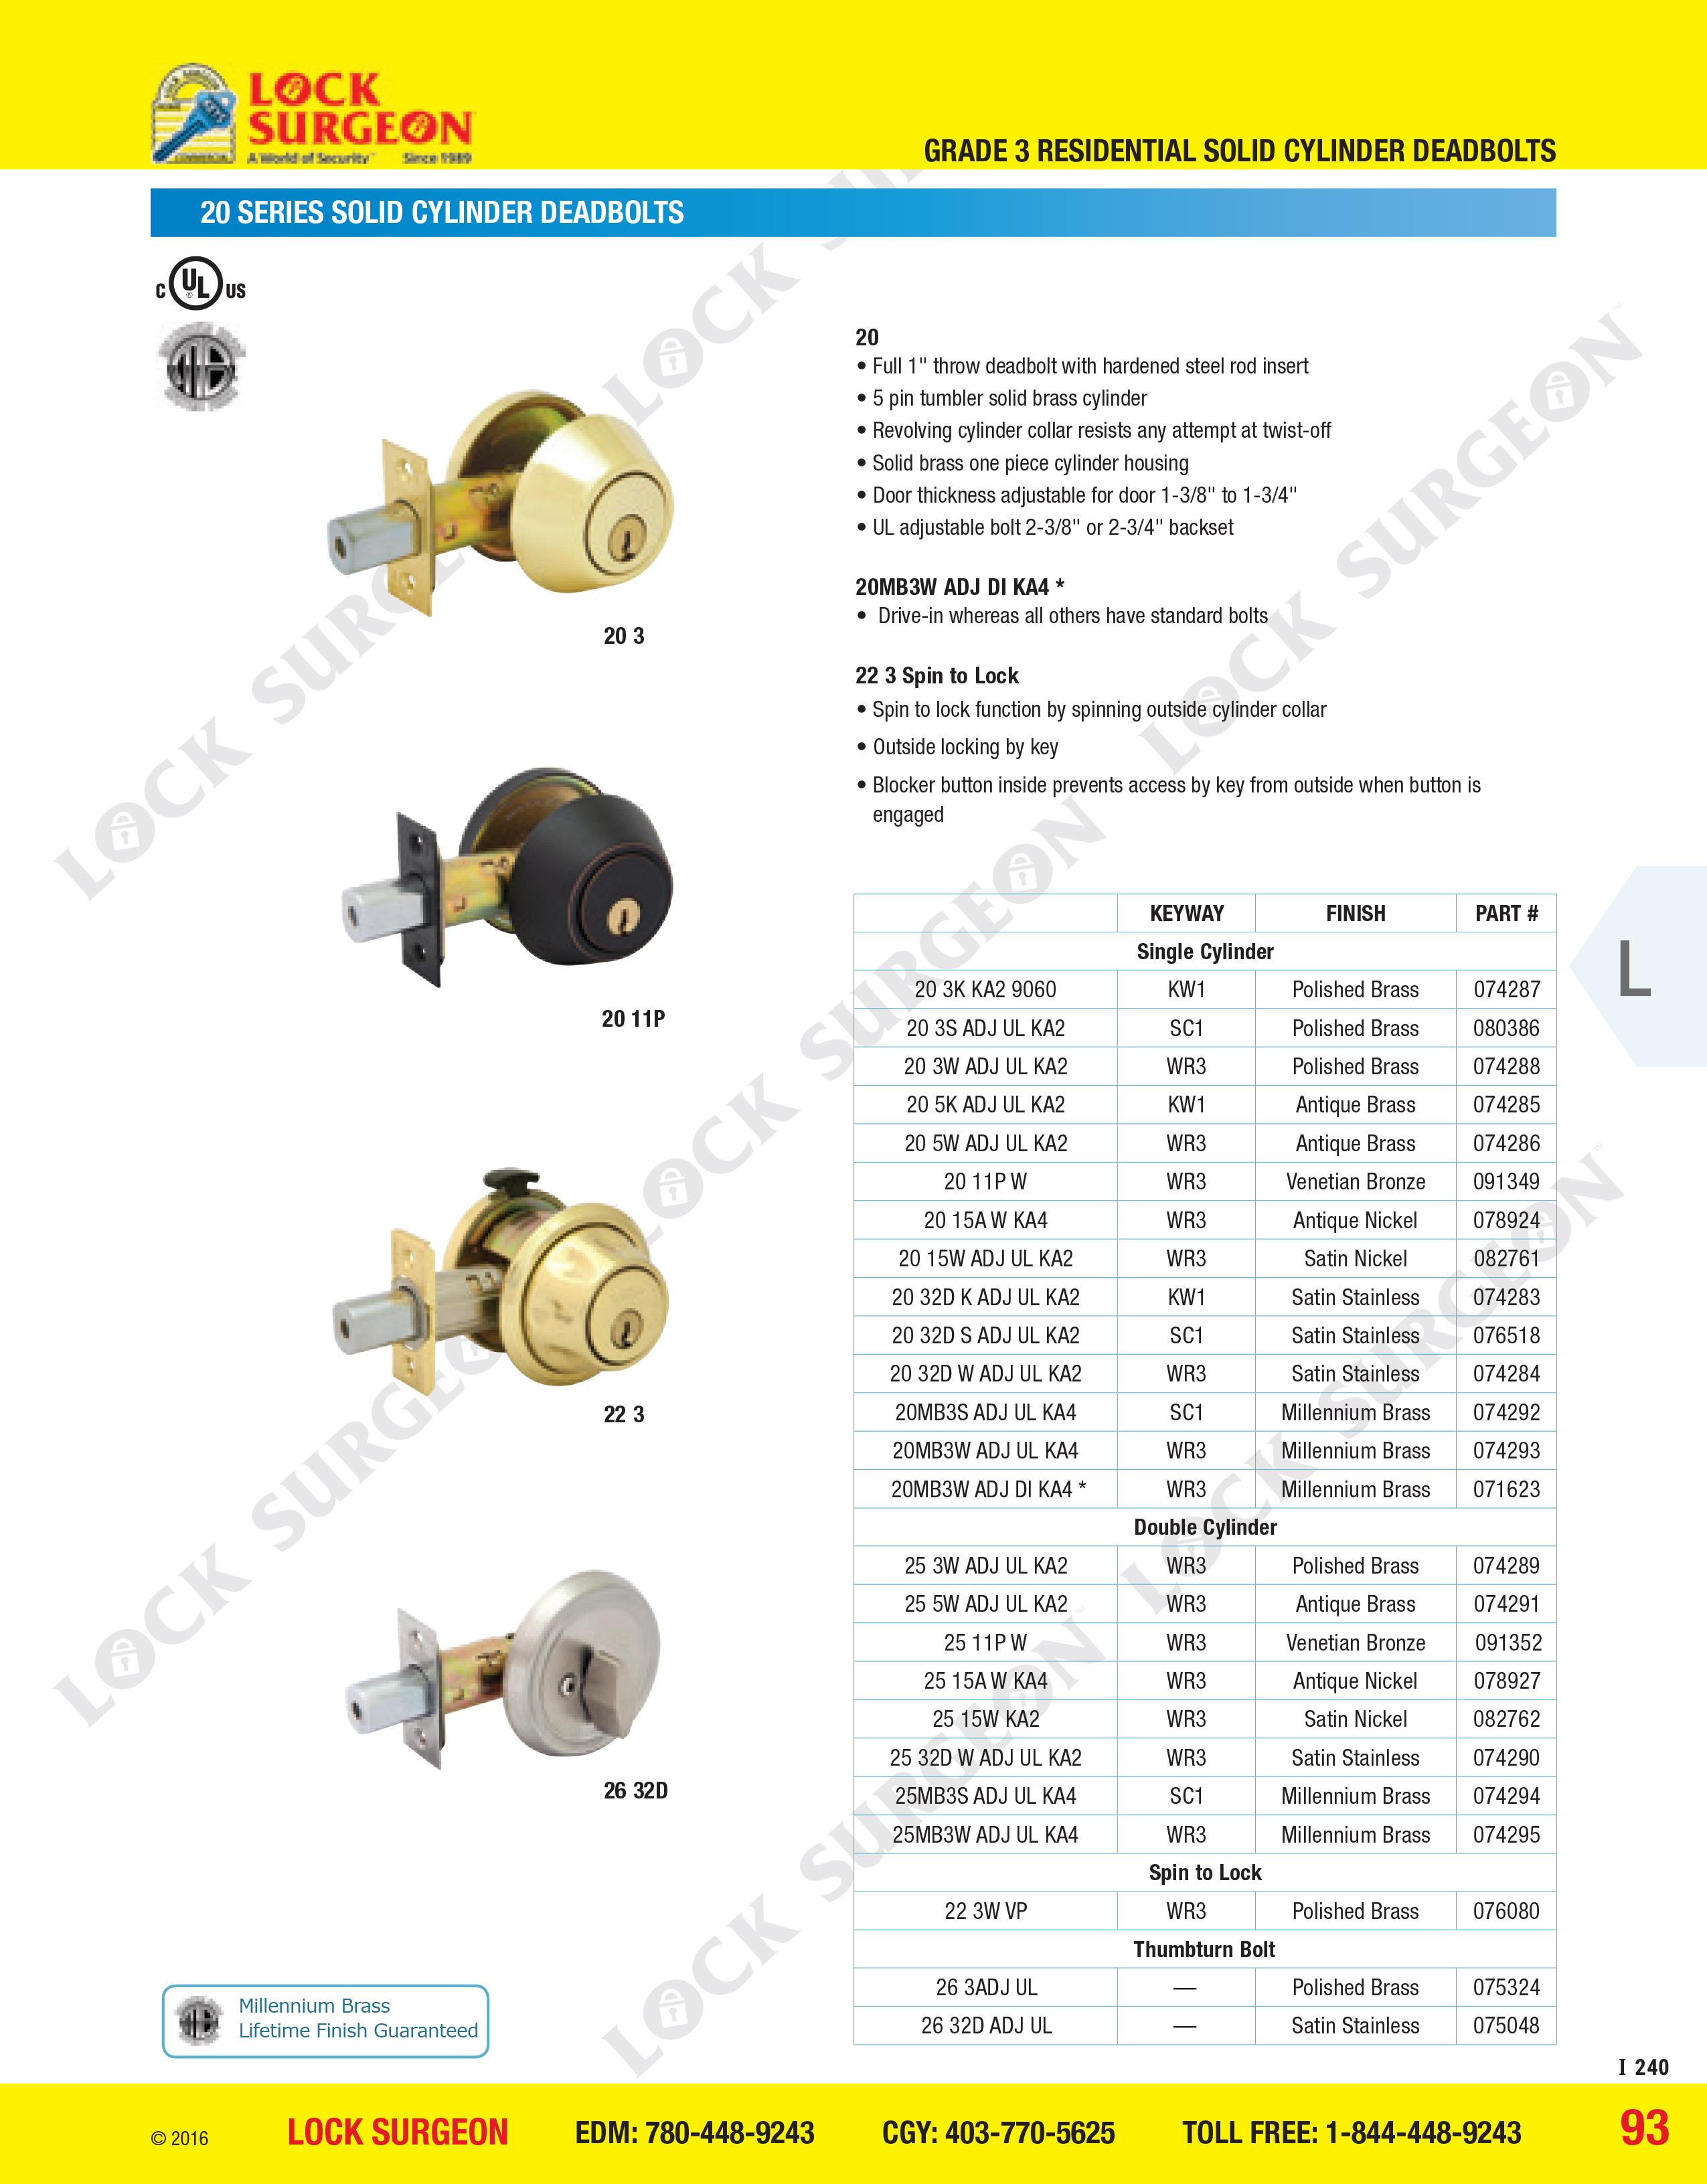 top of grade deadbolts come in silver, brass, nickle, stainless steel and venetian bronze colours, single-sided cylindar or double-sided cylindar